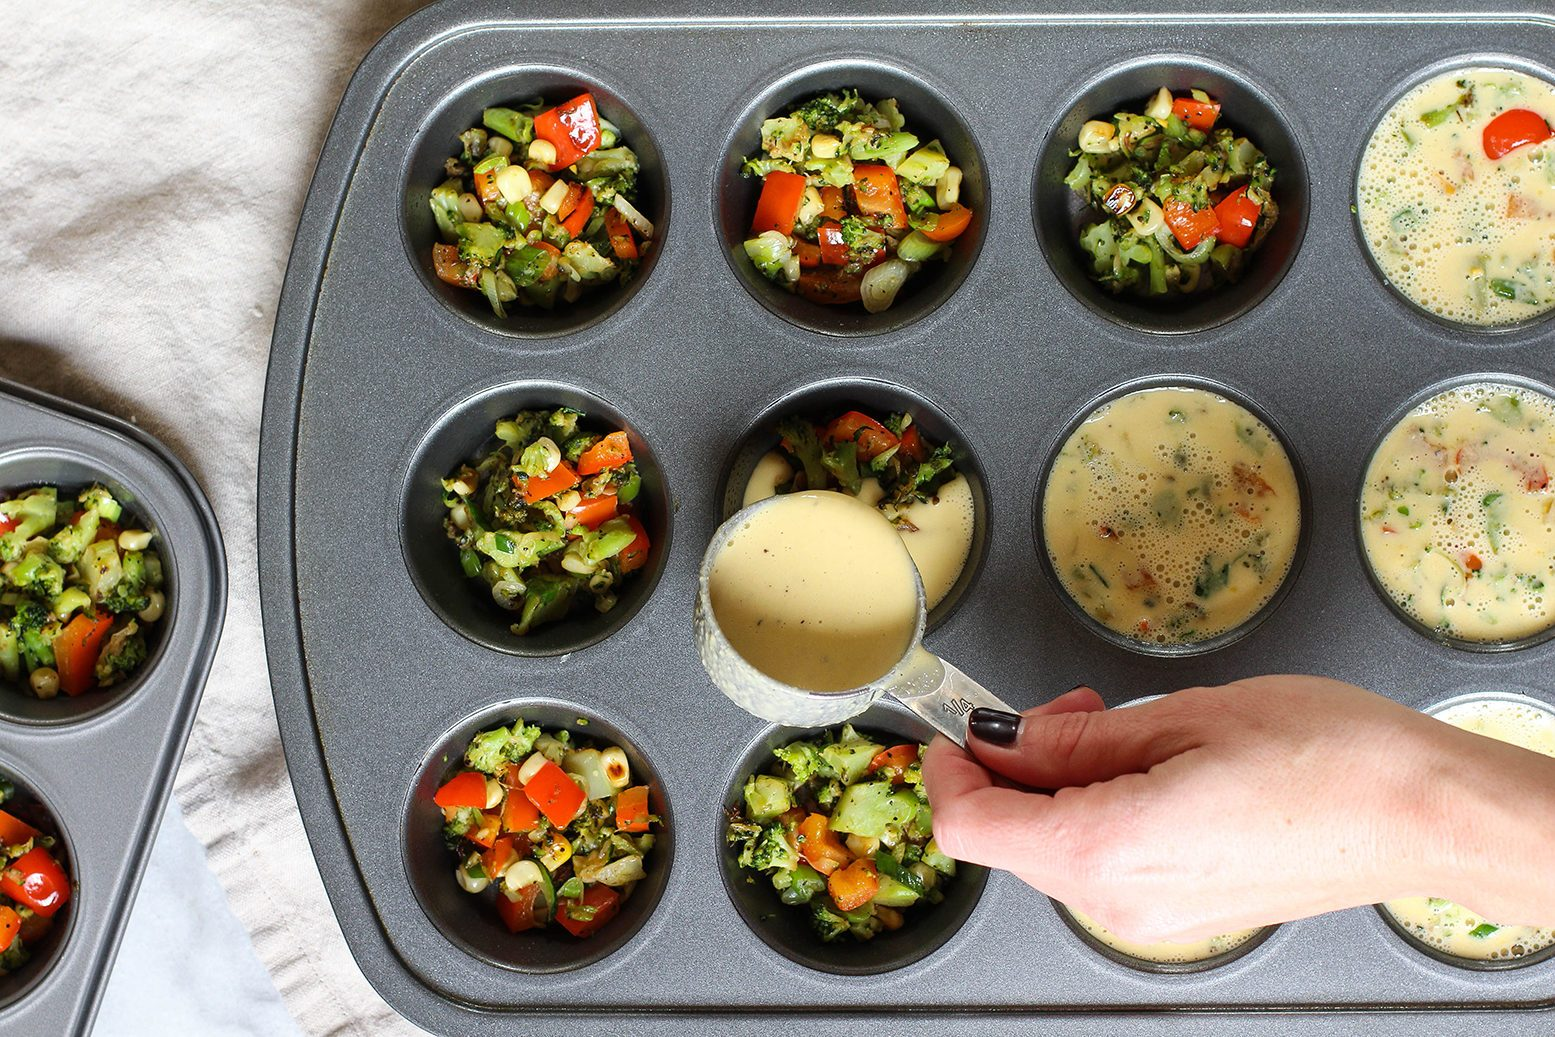 quick and easy breakfast ideas   healthy breakfast   chickpea flour frittatas